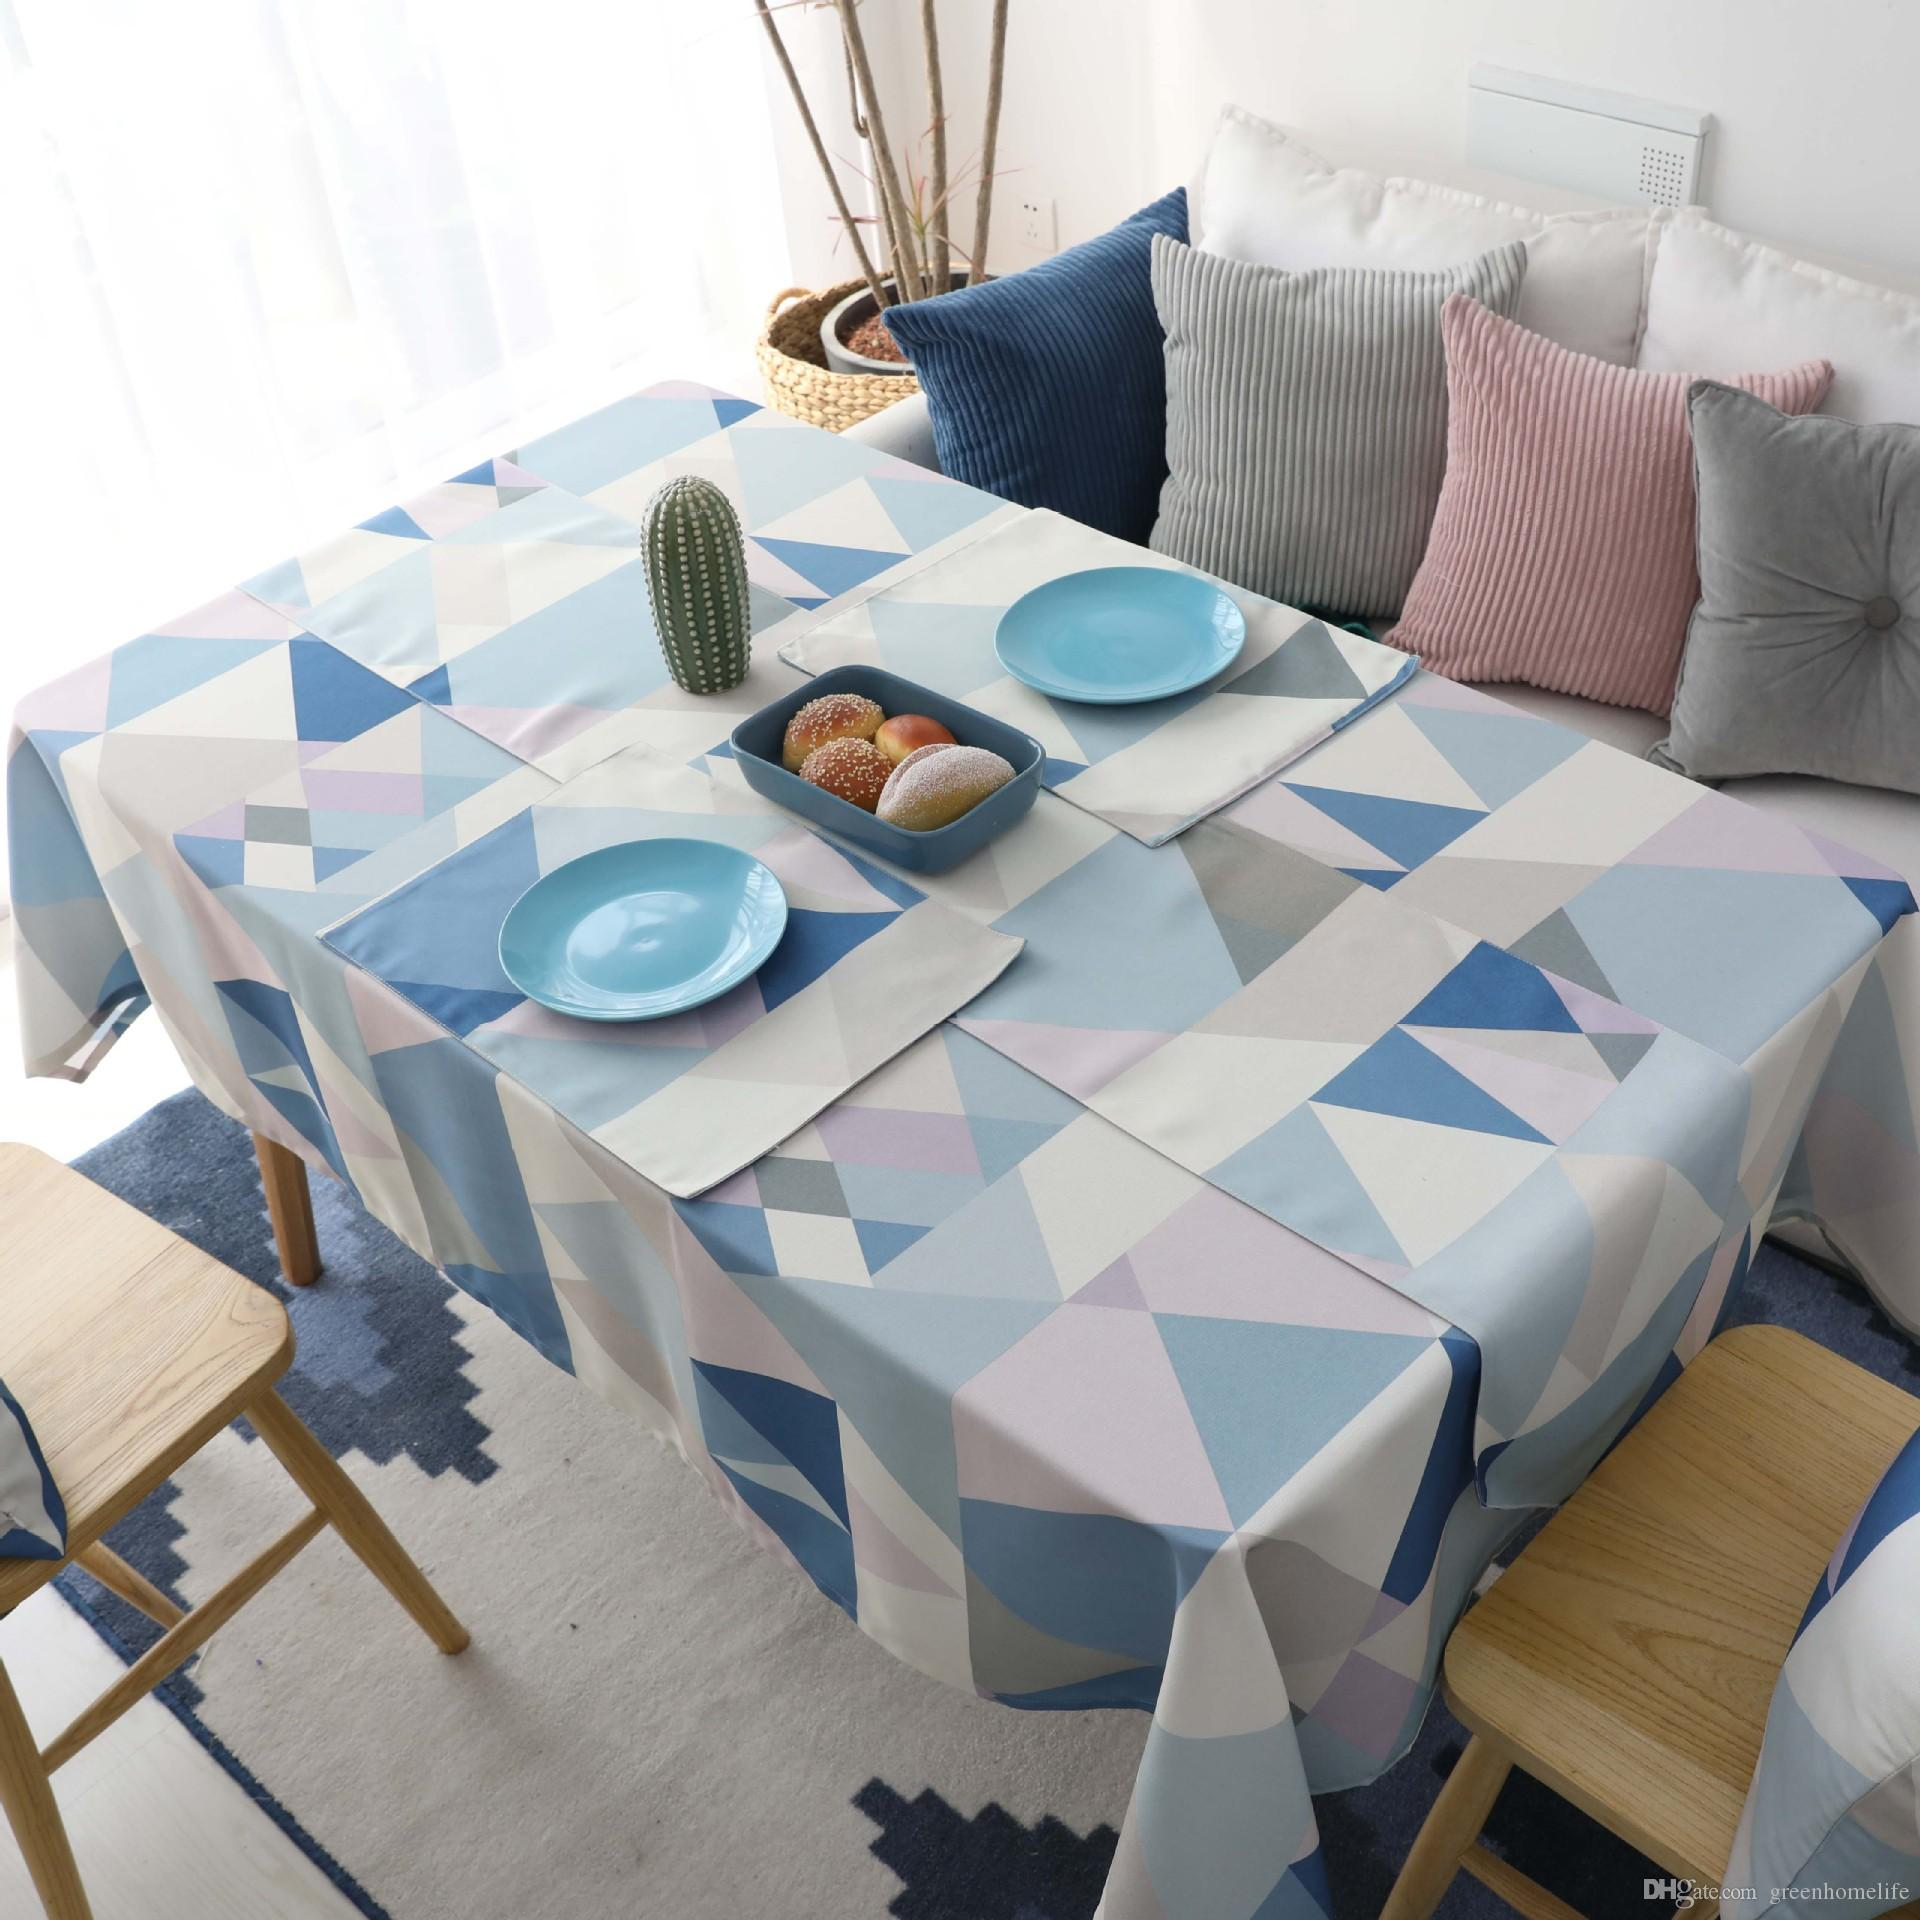 Table Cloth Waterproof Nordic Minimalist Table Cloth Rectangular Coffee Table Cover Living Room Dining Room Free Shipping